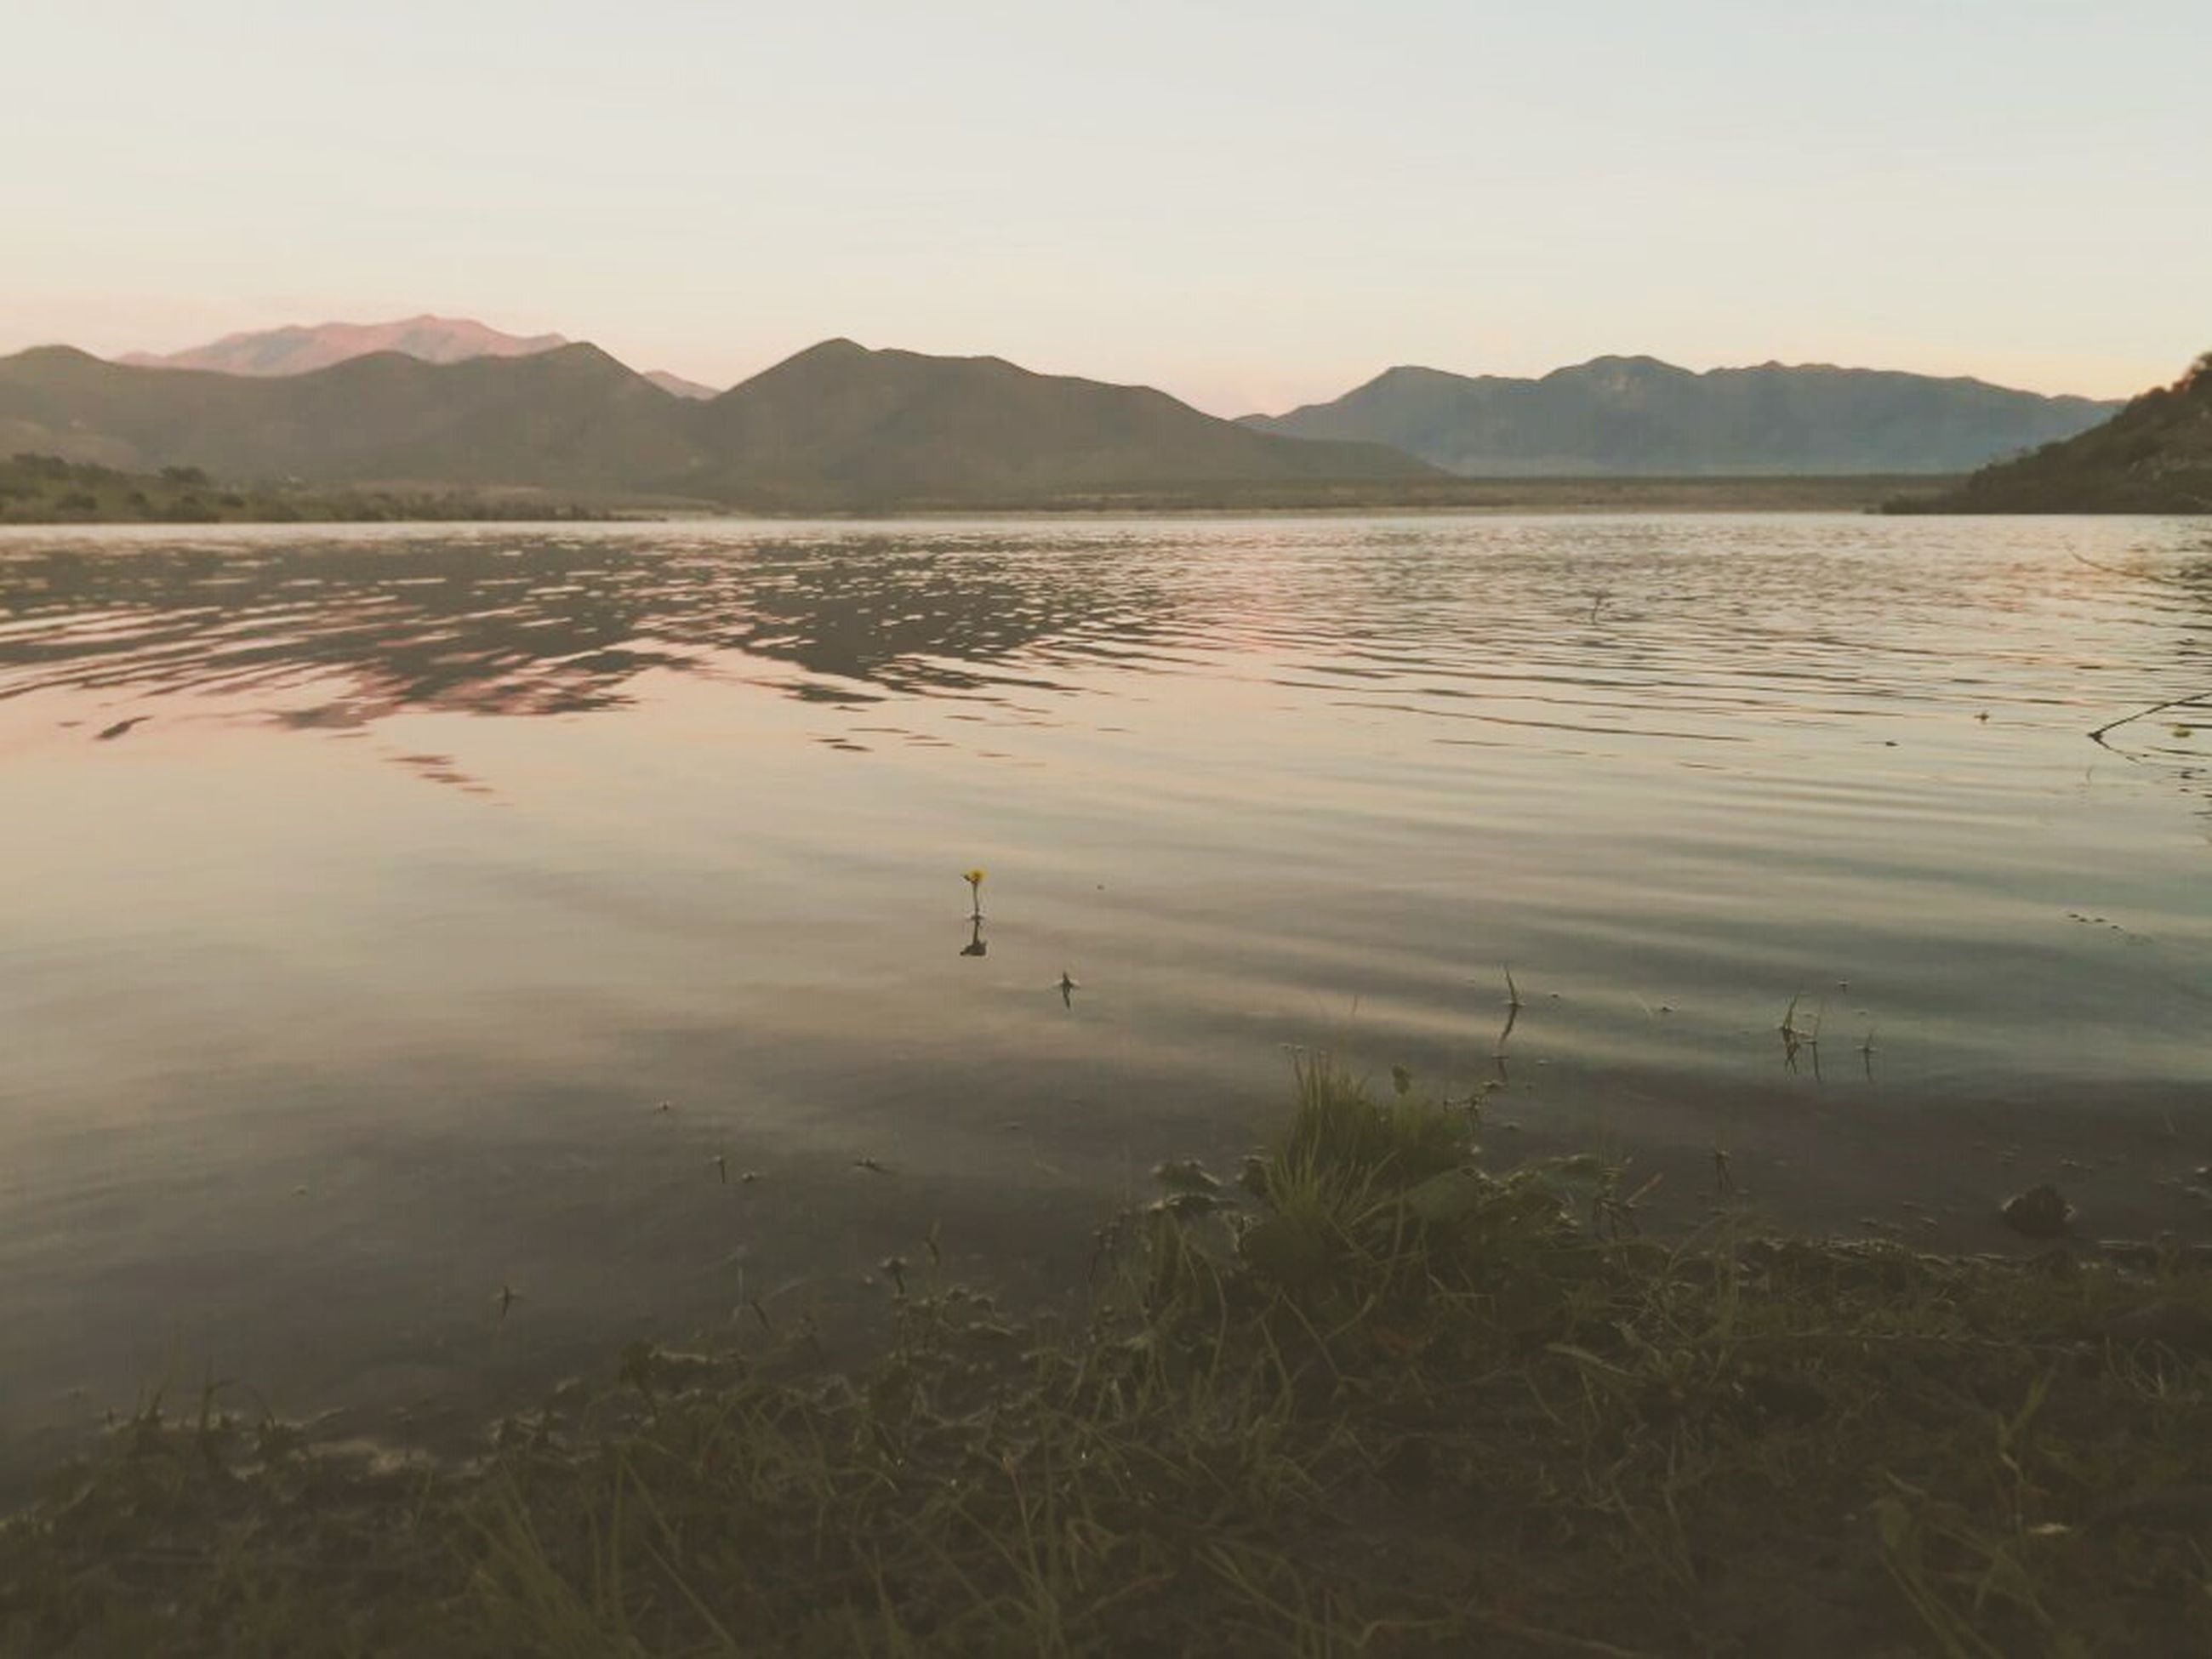 nature, mountain, lake, water, bird, reflection, beauty in nature, tranquility, animals in the wild, sunset, scenics, outdoors, mountain range, tranquil scene, no people, animal themes, sky, swimming, grass, day, clear sky